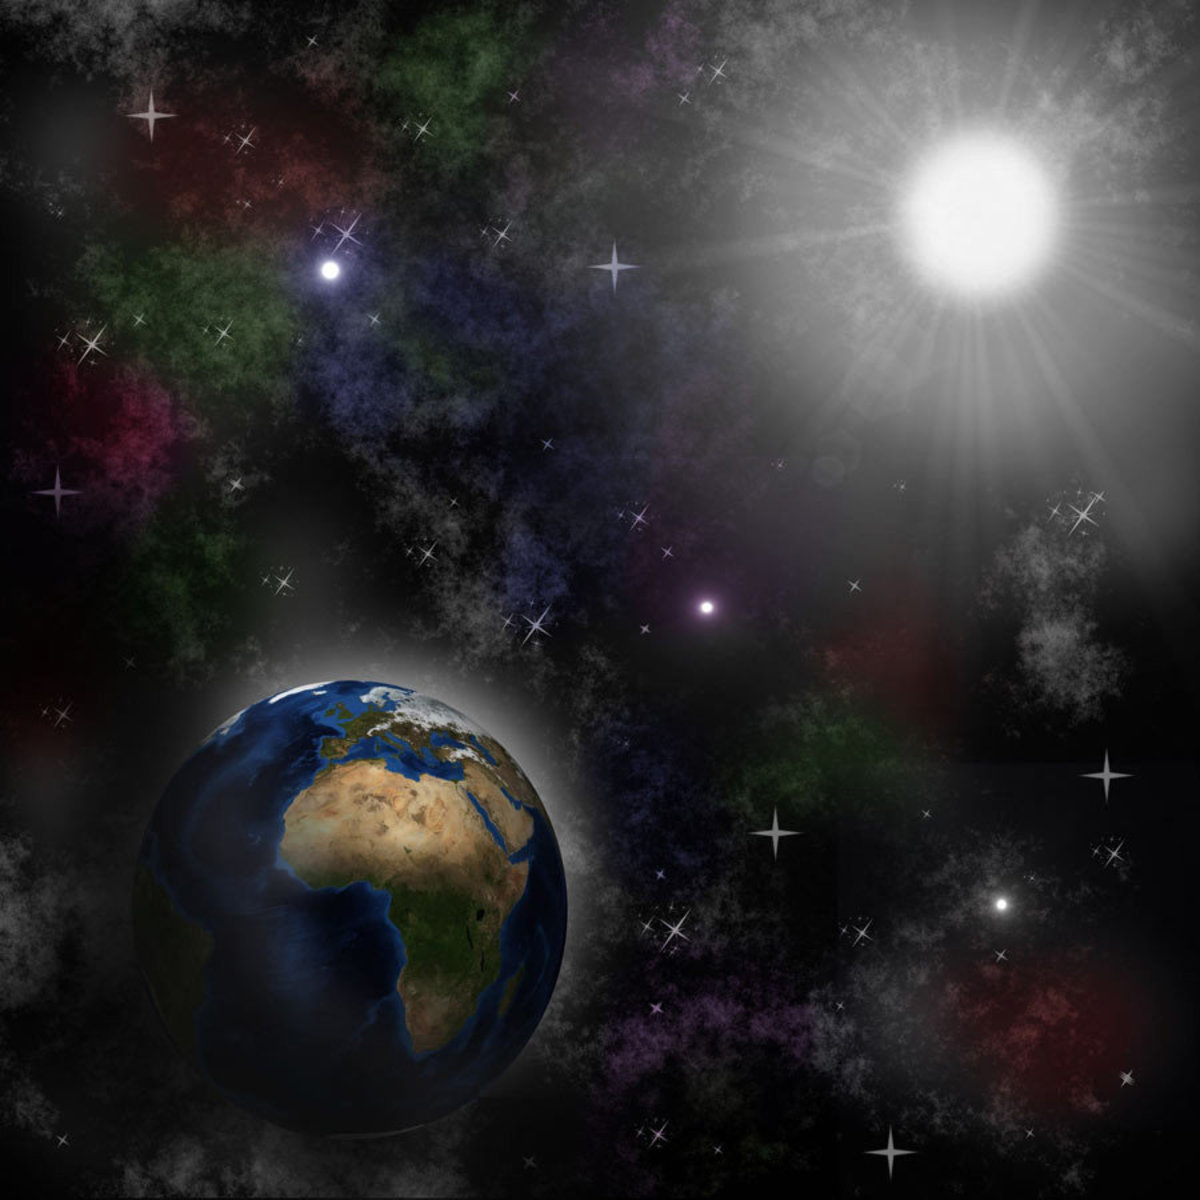 sun illuminating the earth in outer space